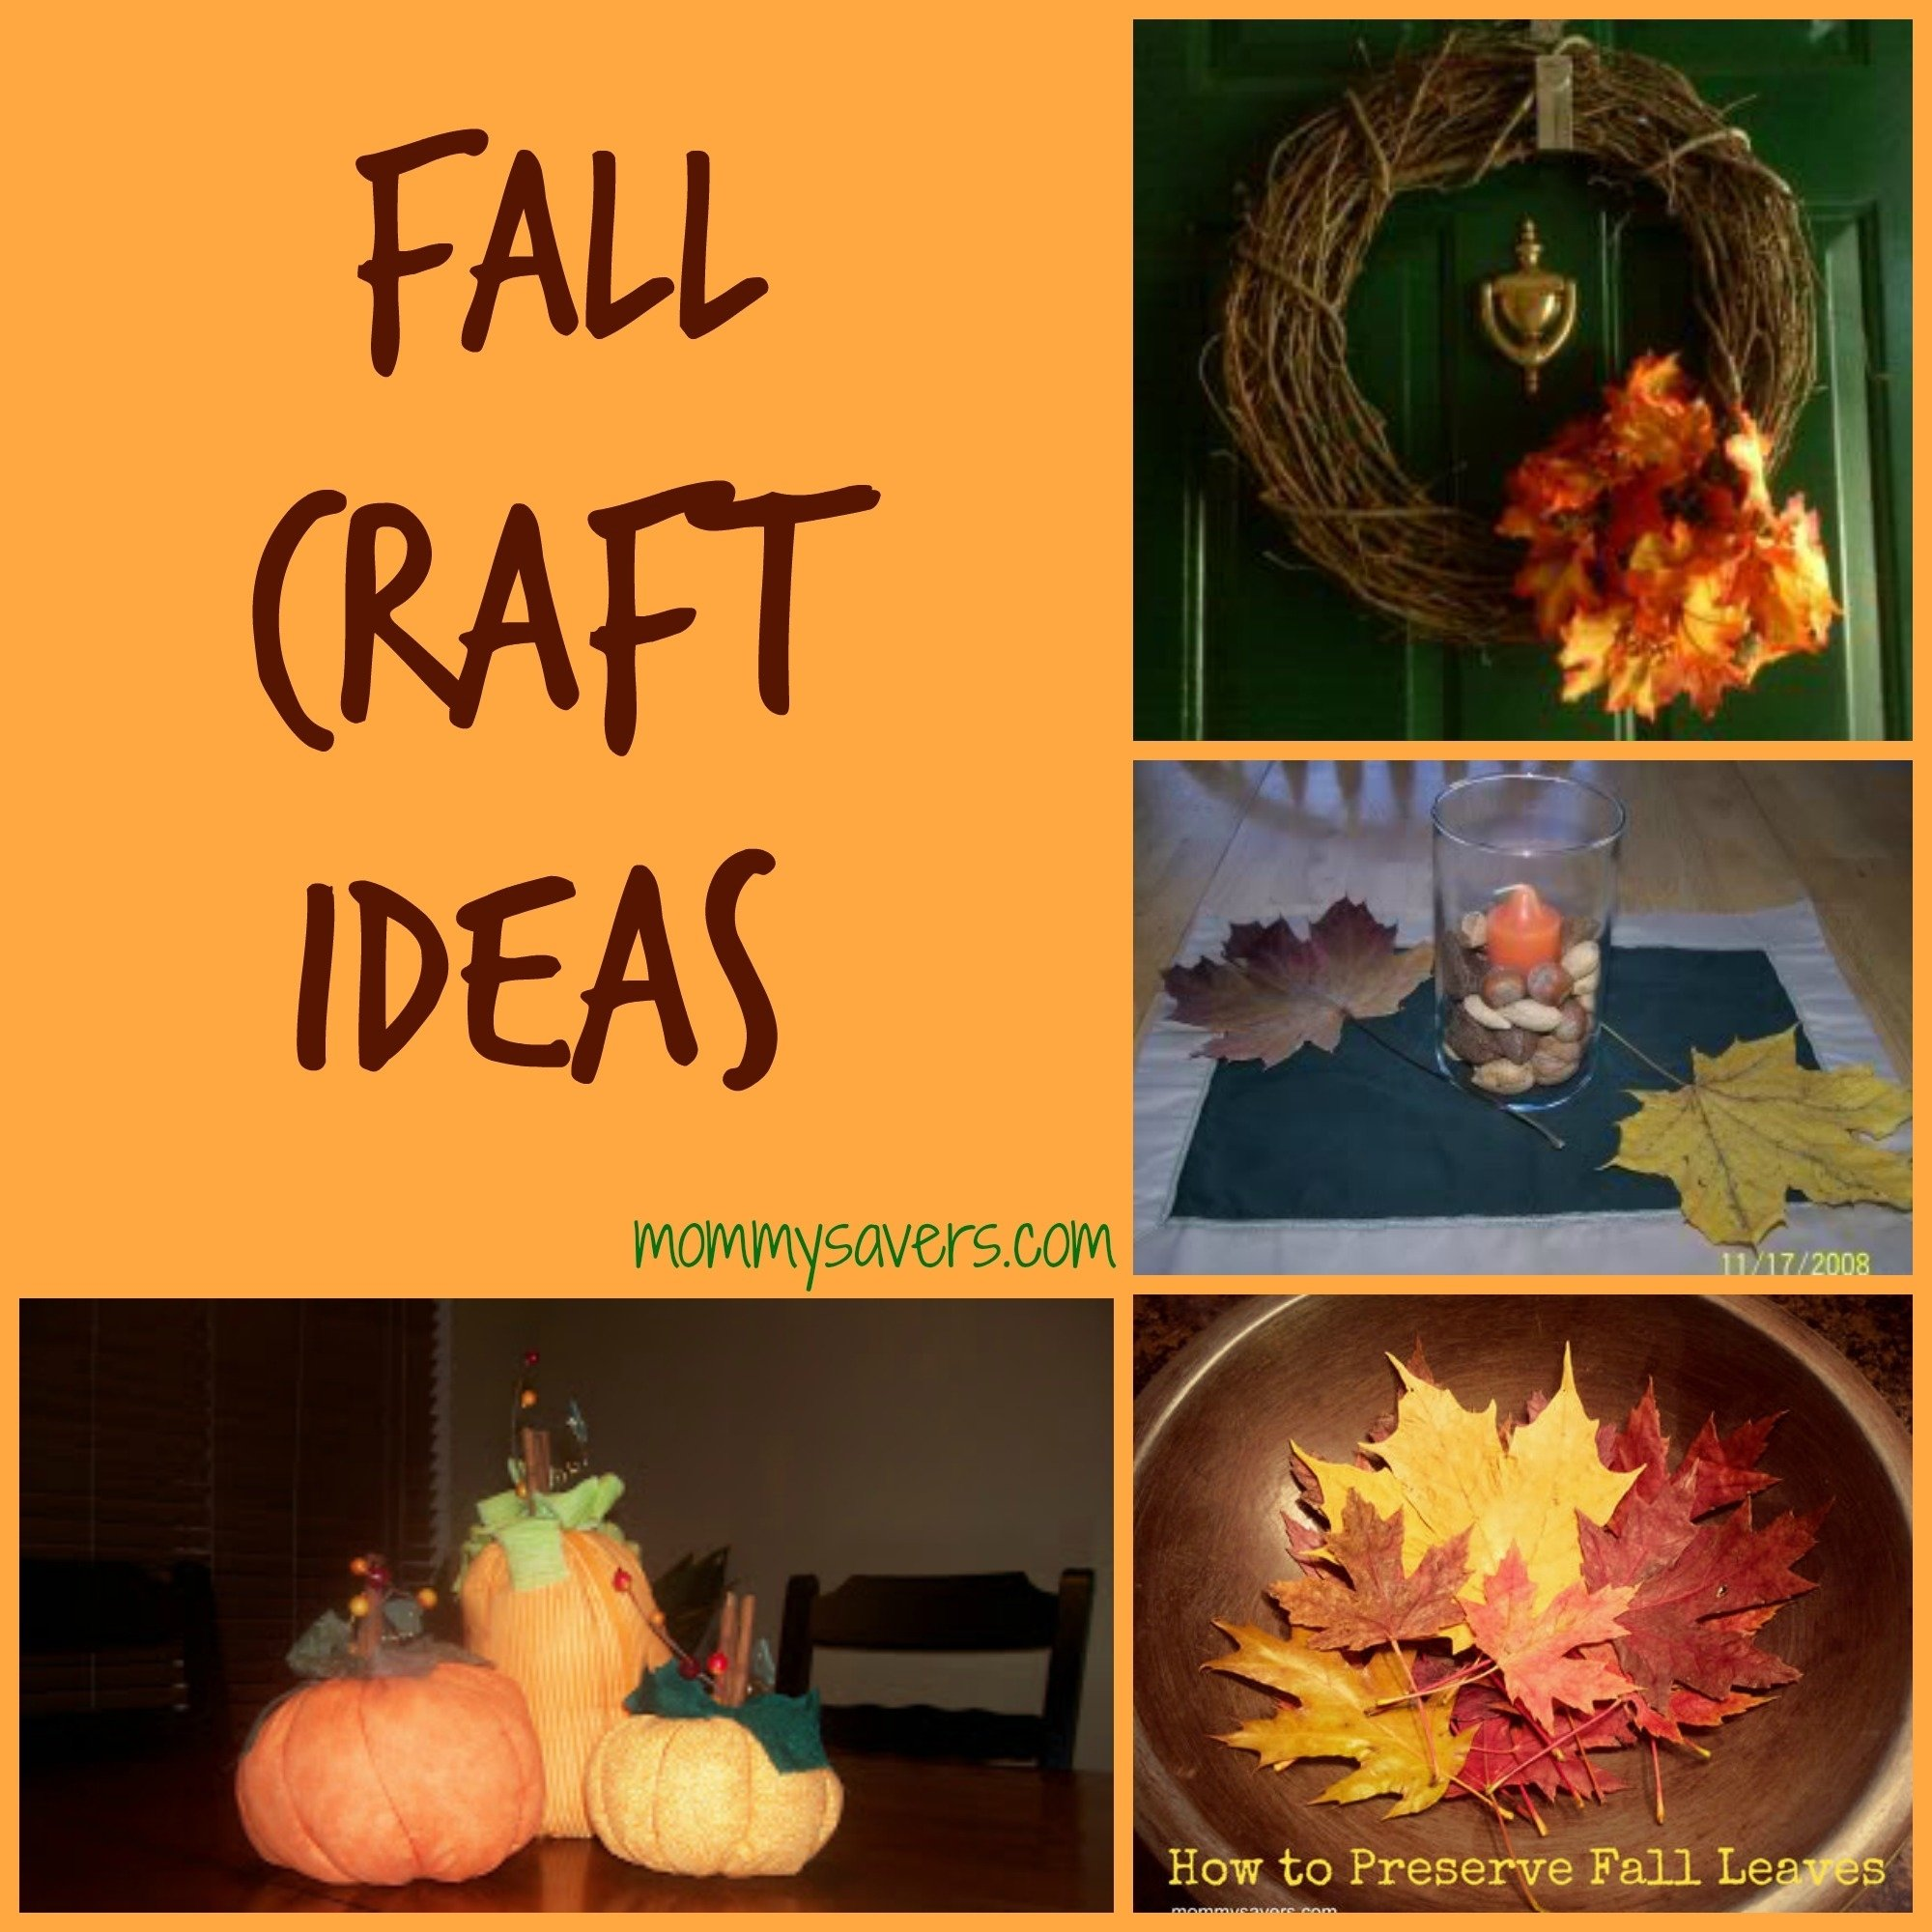 10 Ideal Fall Craft Ideas For The Home fall craft ideas 10 simple crafts mommysavers